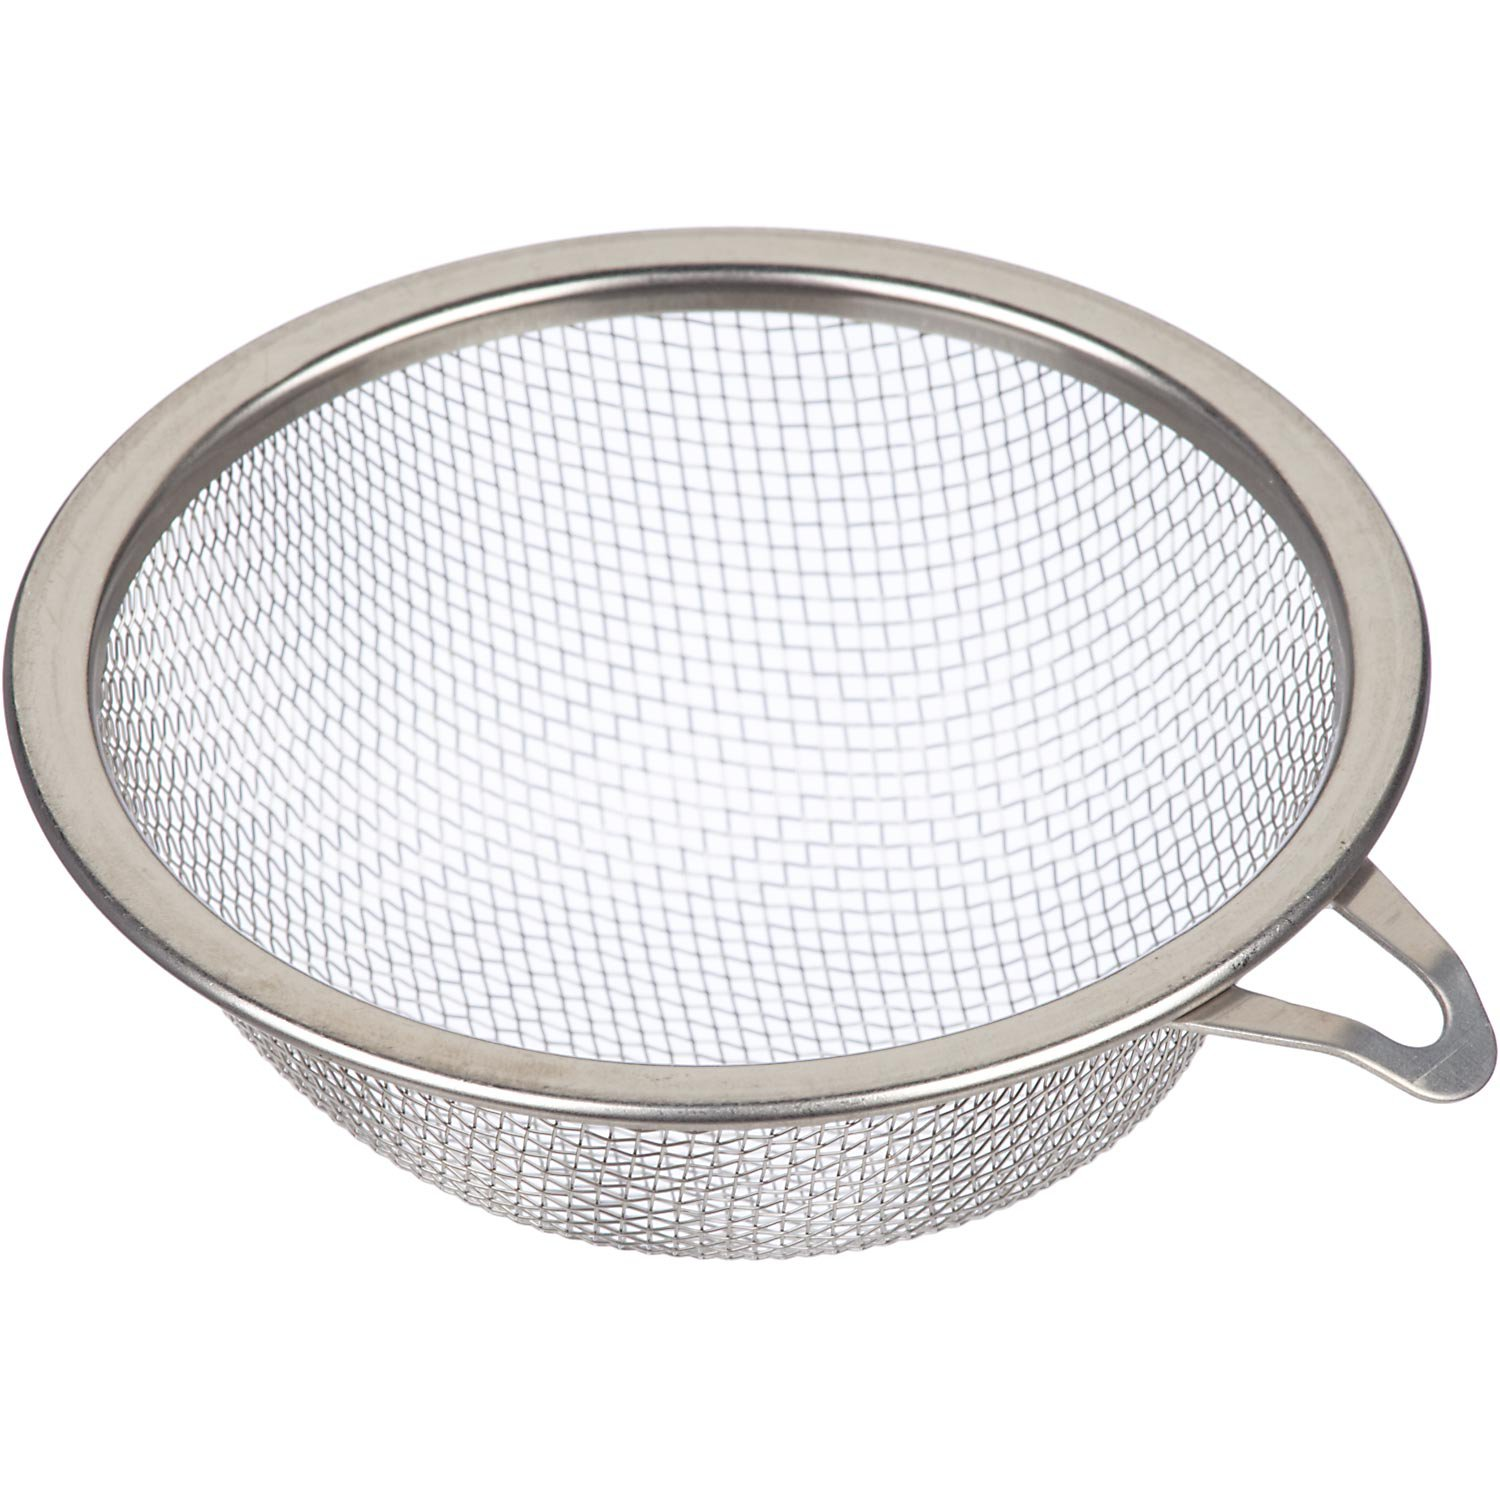 Petco Mealworm Strainer for Reptiles